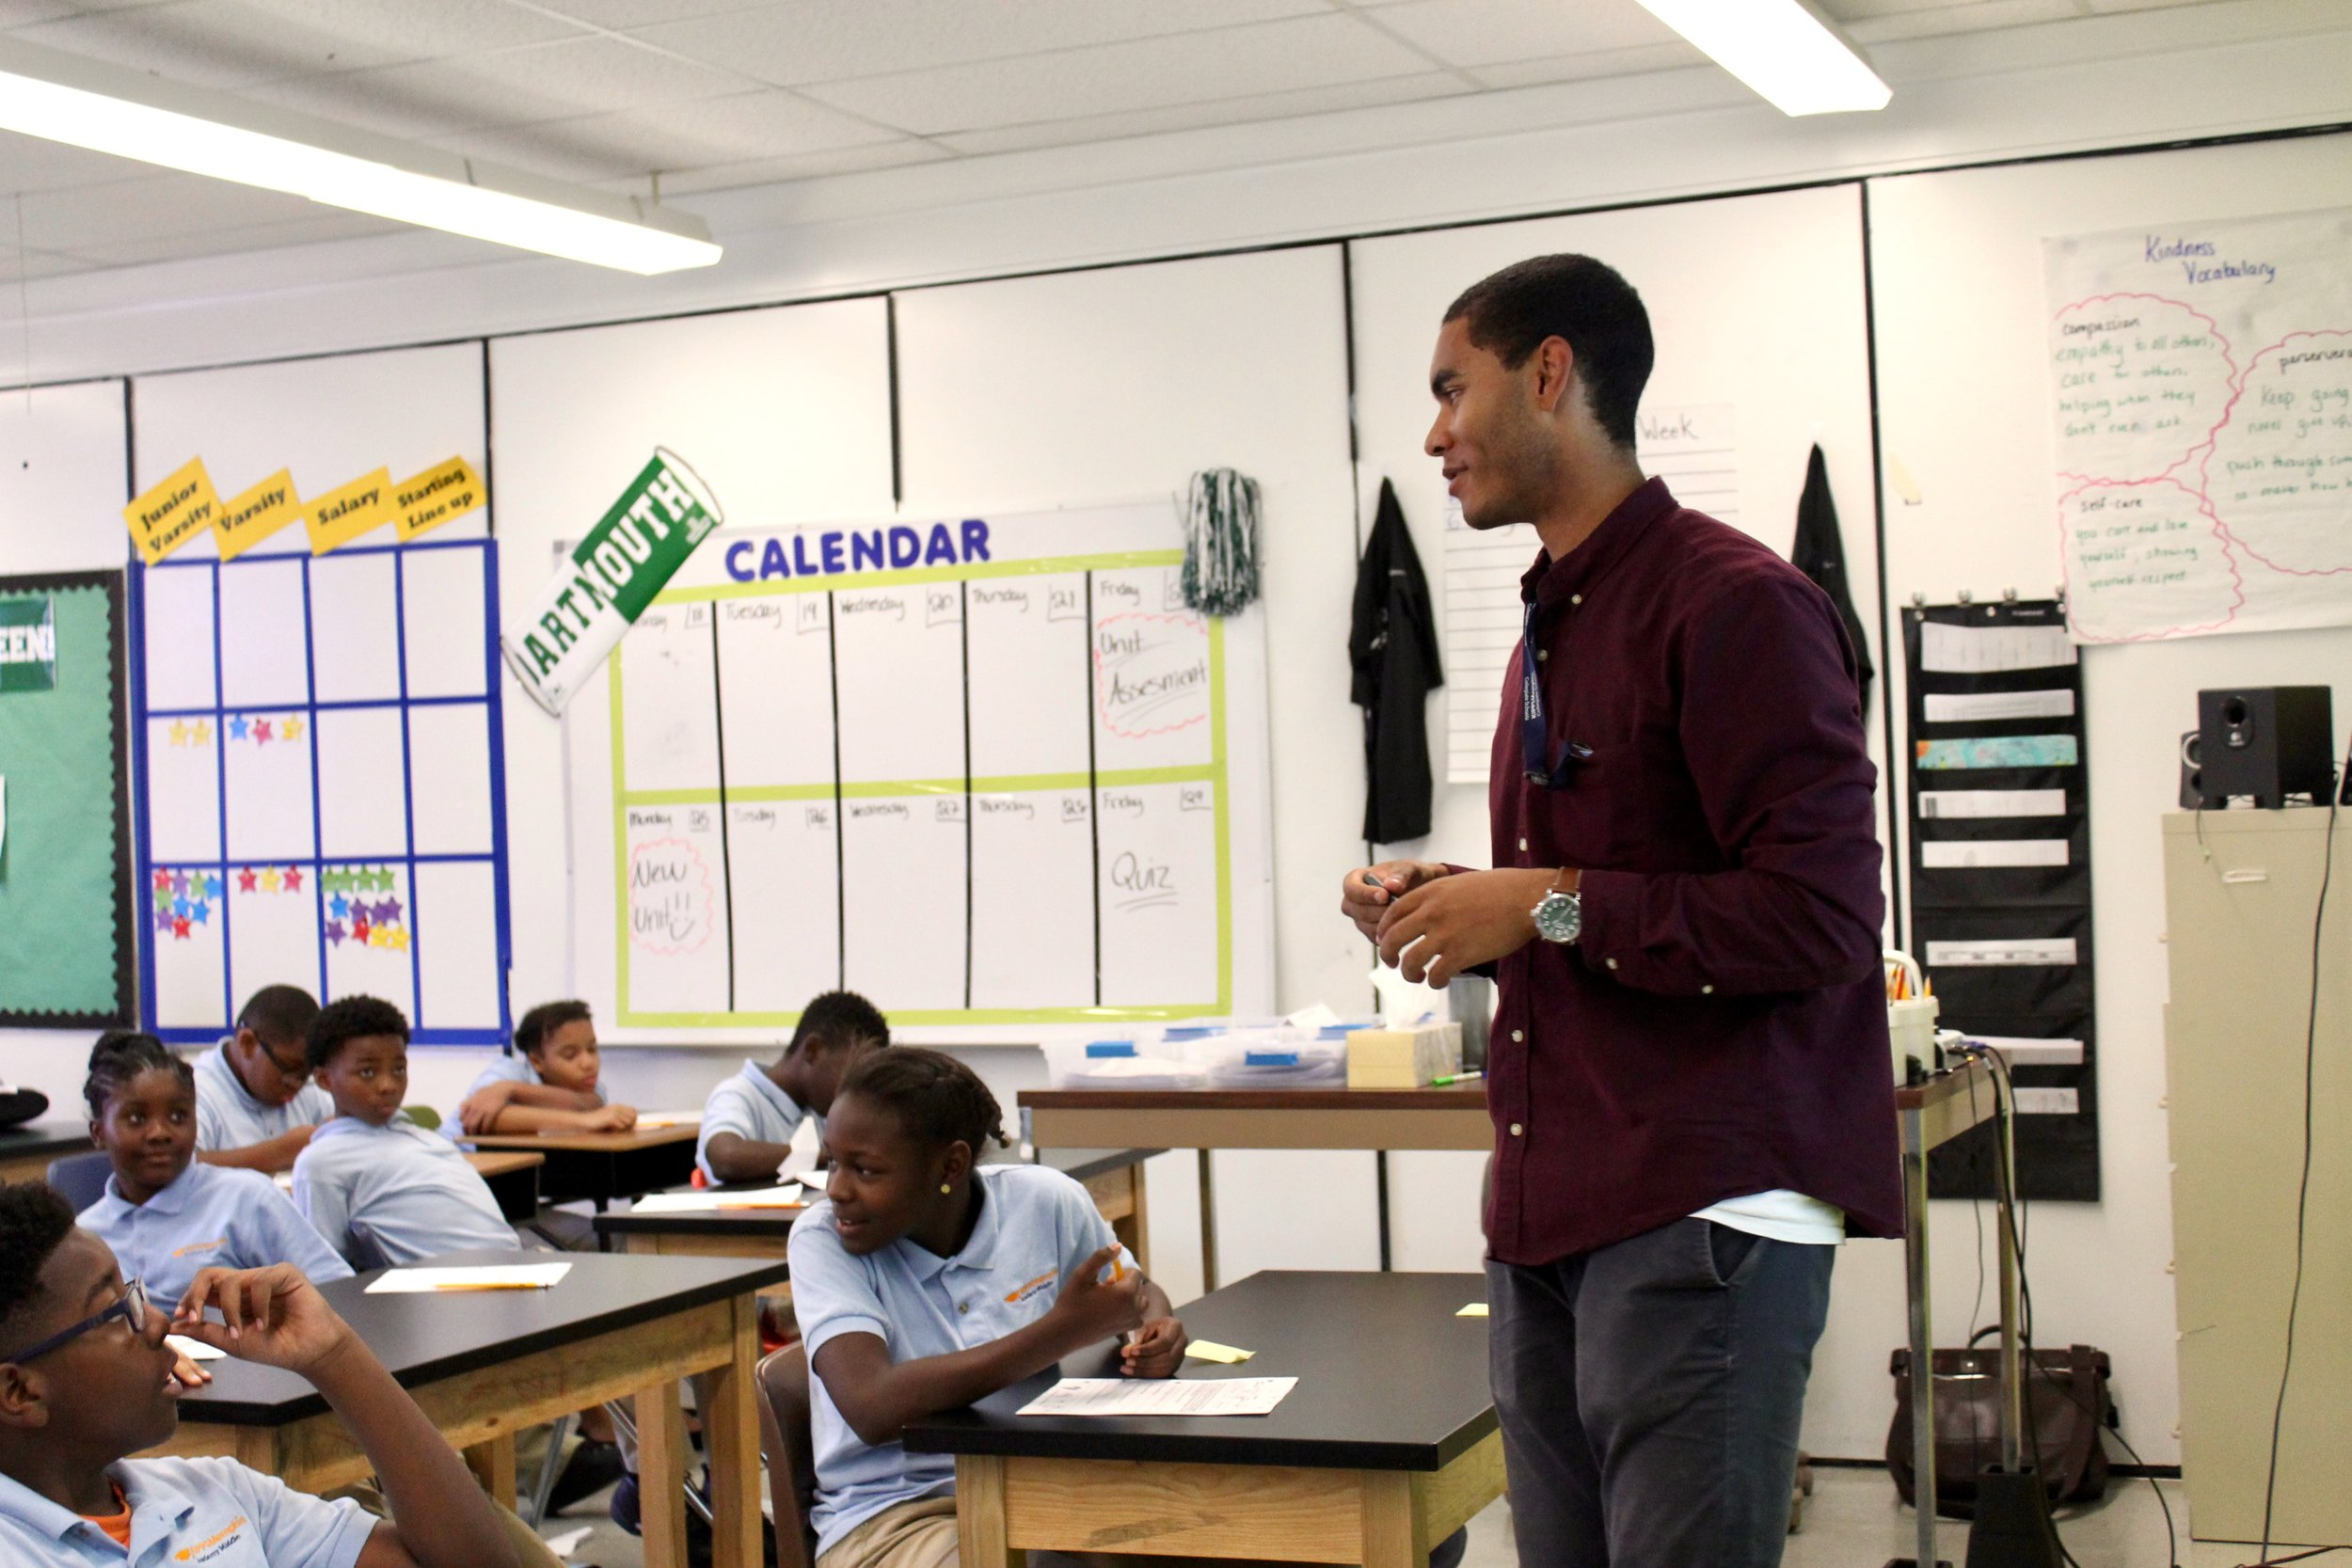 Brendan Caldwell began his Teach for America commitment with KIPP Memphis Academy Middle as a 6th grade science teacher in 2017, and has chosen to stay beyond his two-year program.